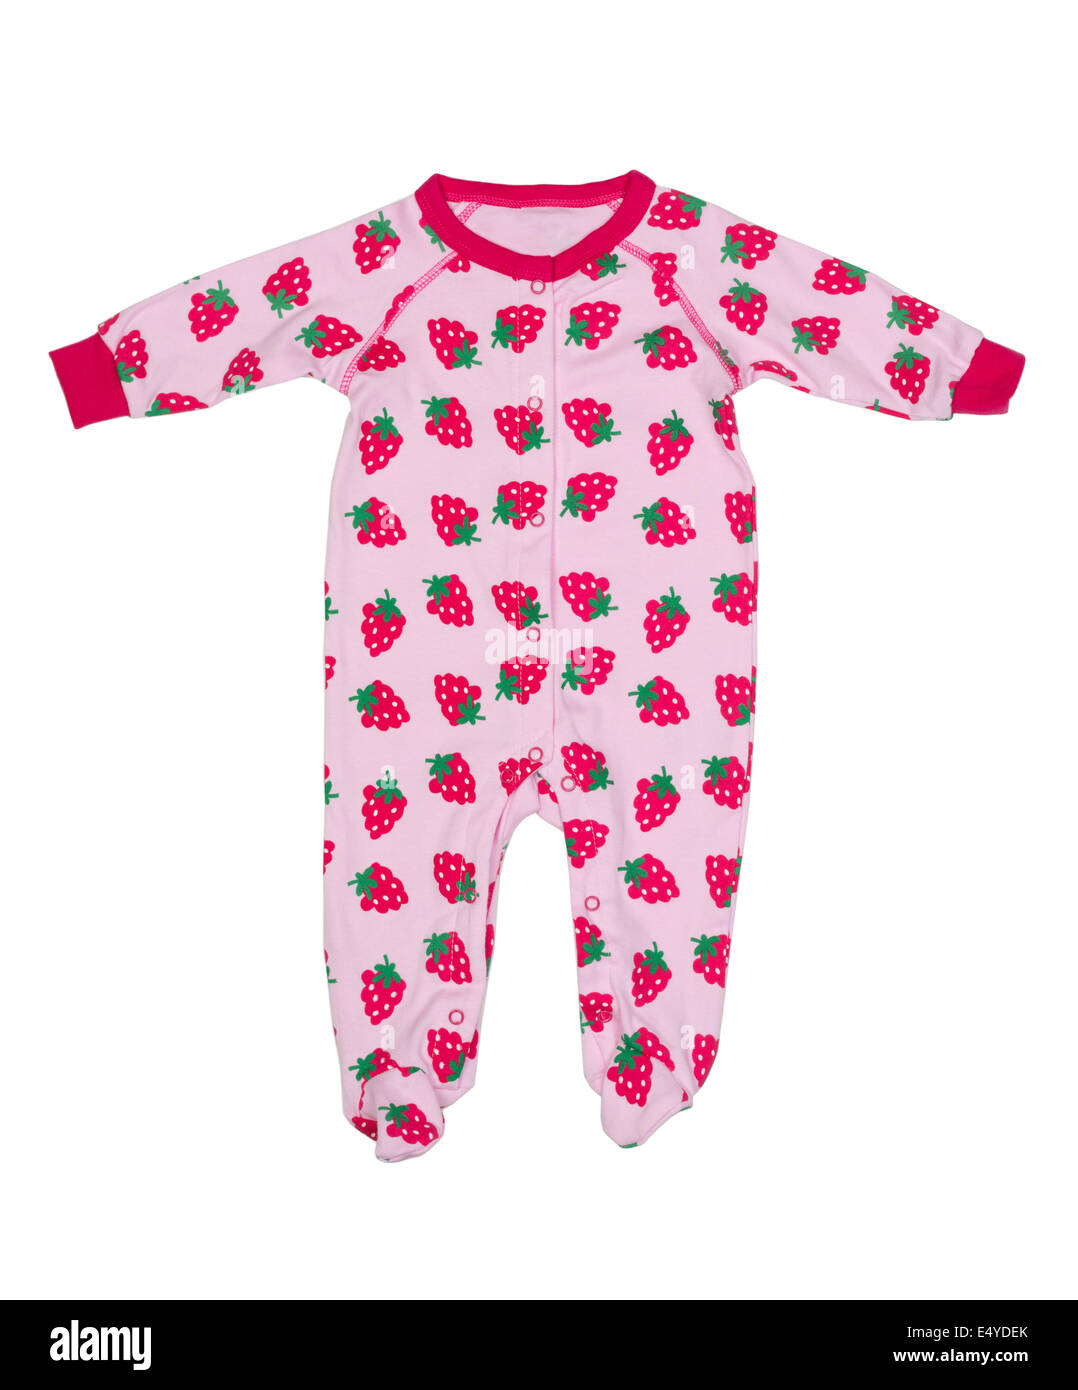 Clothing for newborns with strawberry pattern - Stock Image